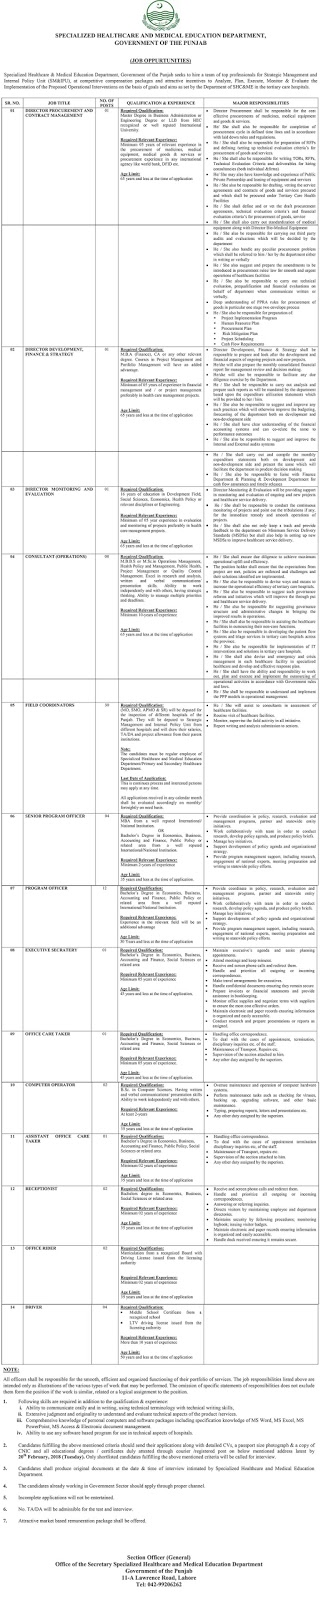 Latest Govt Jobs in Specialized Healthcare & Medical Education Department Feb 2018